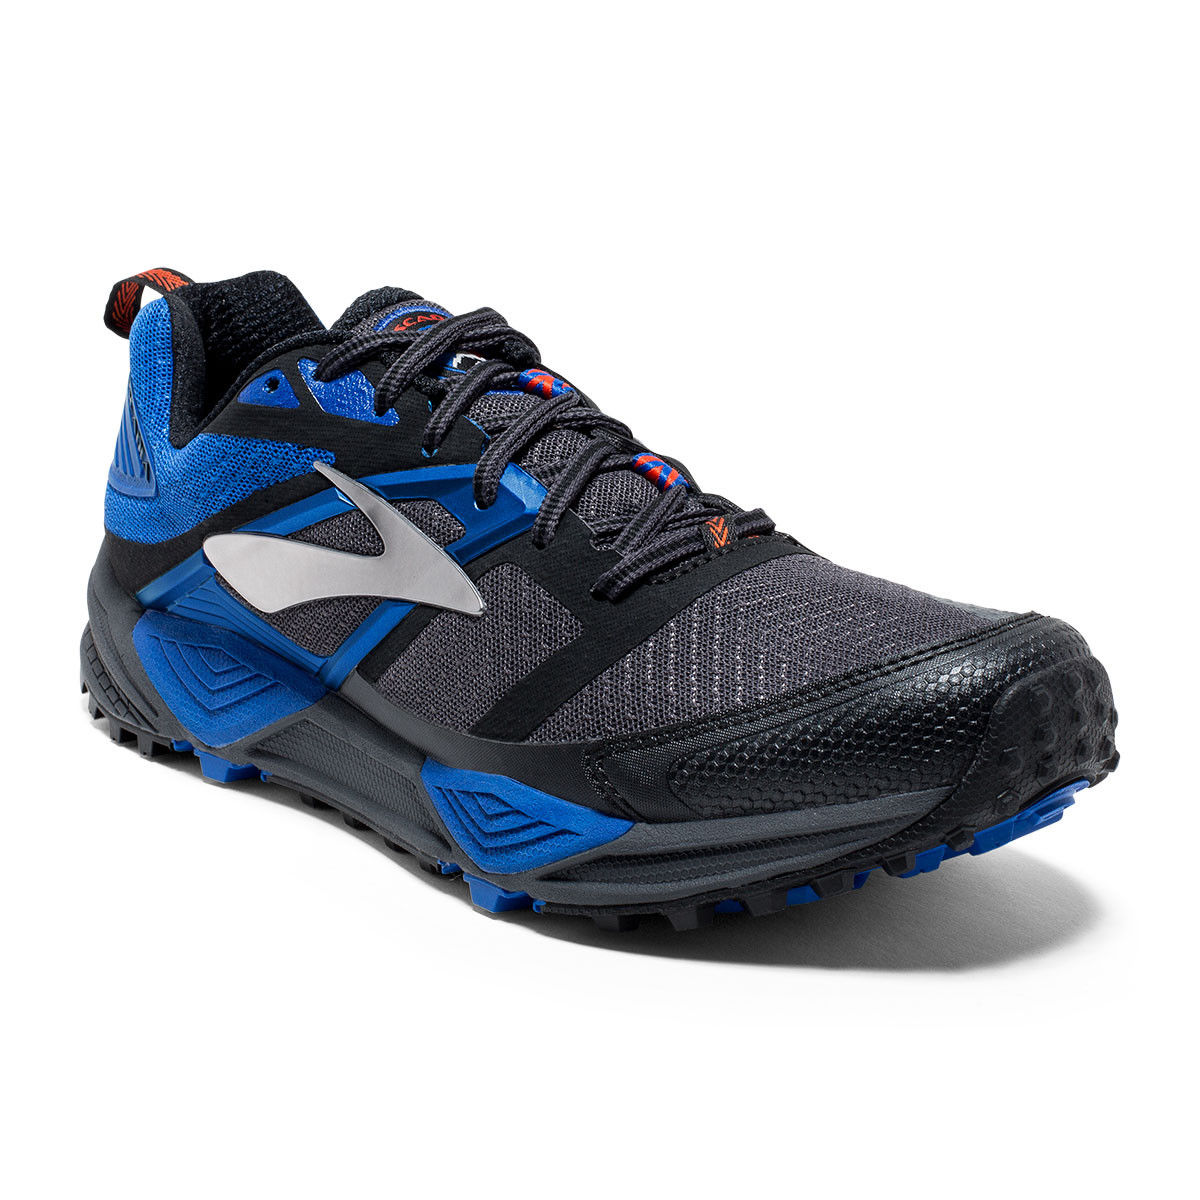 Trail Running Shoes Stability Uk